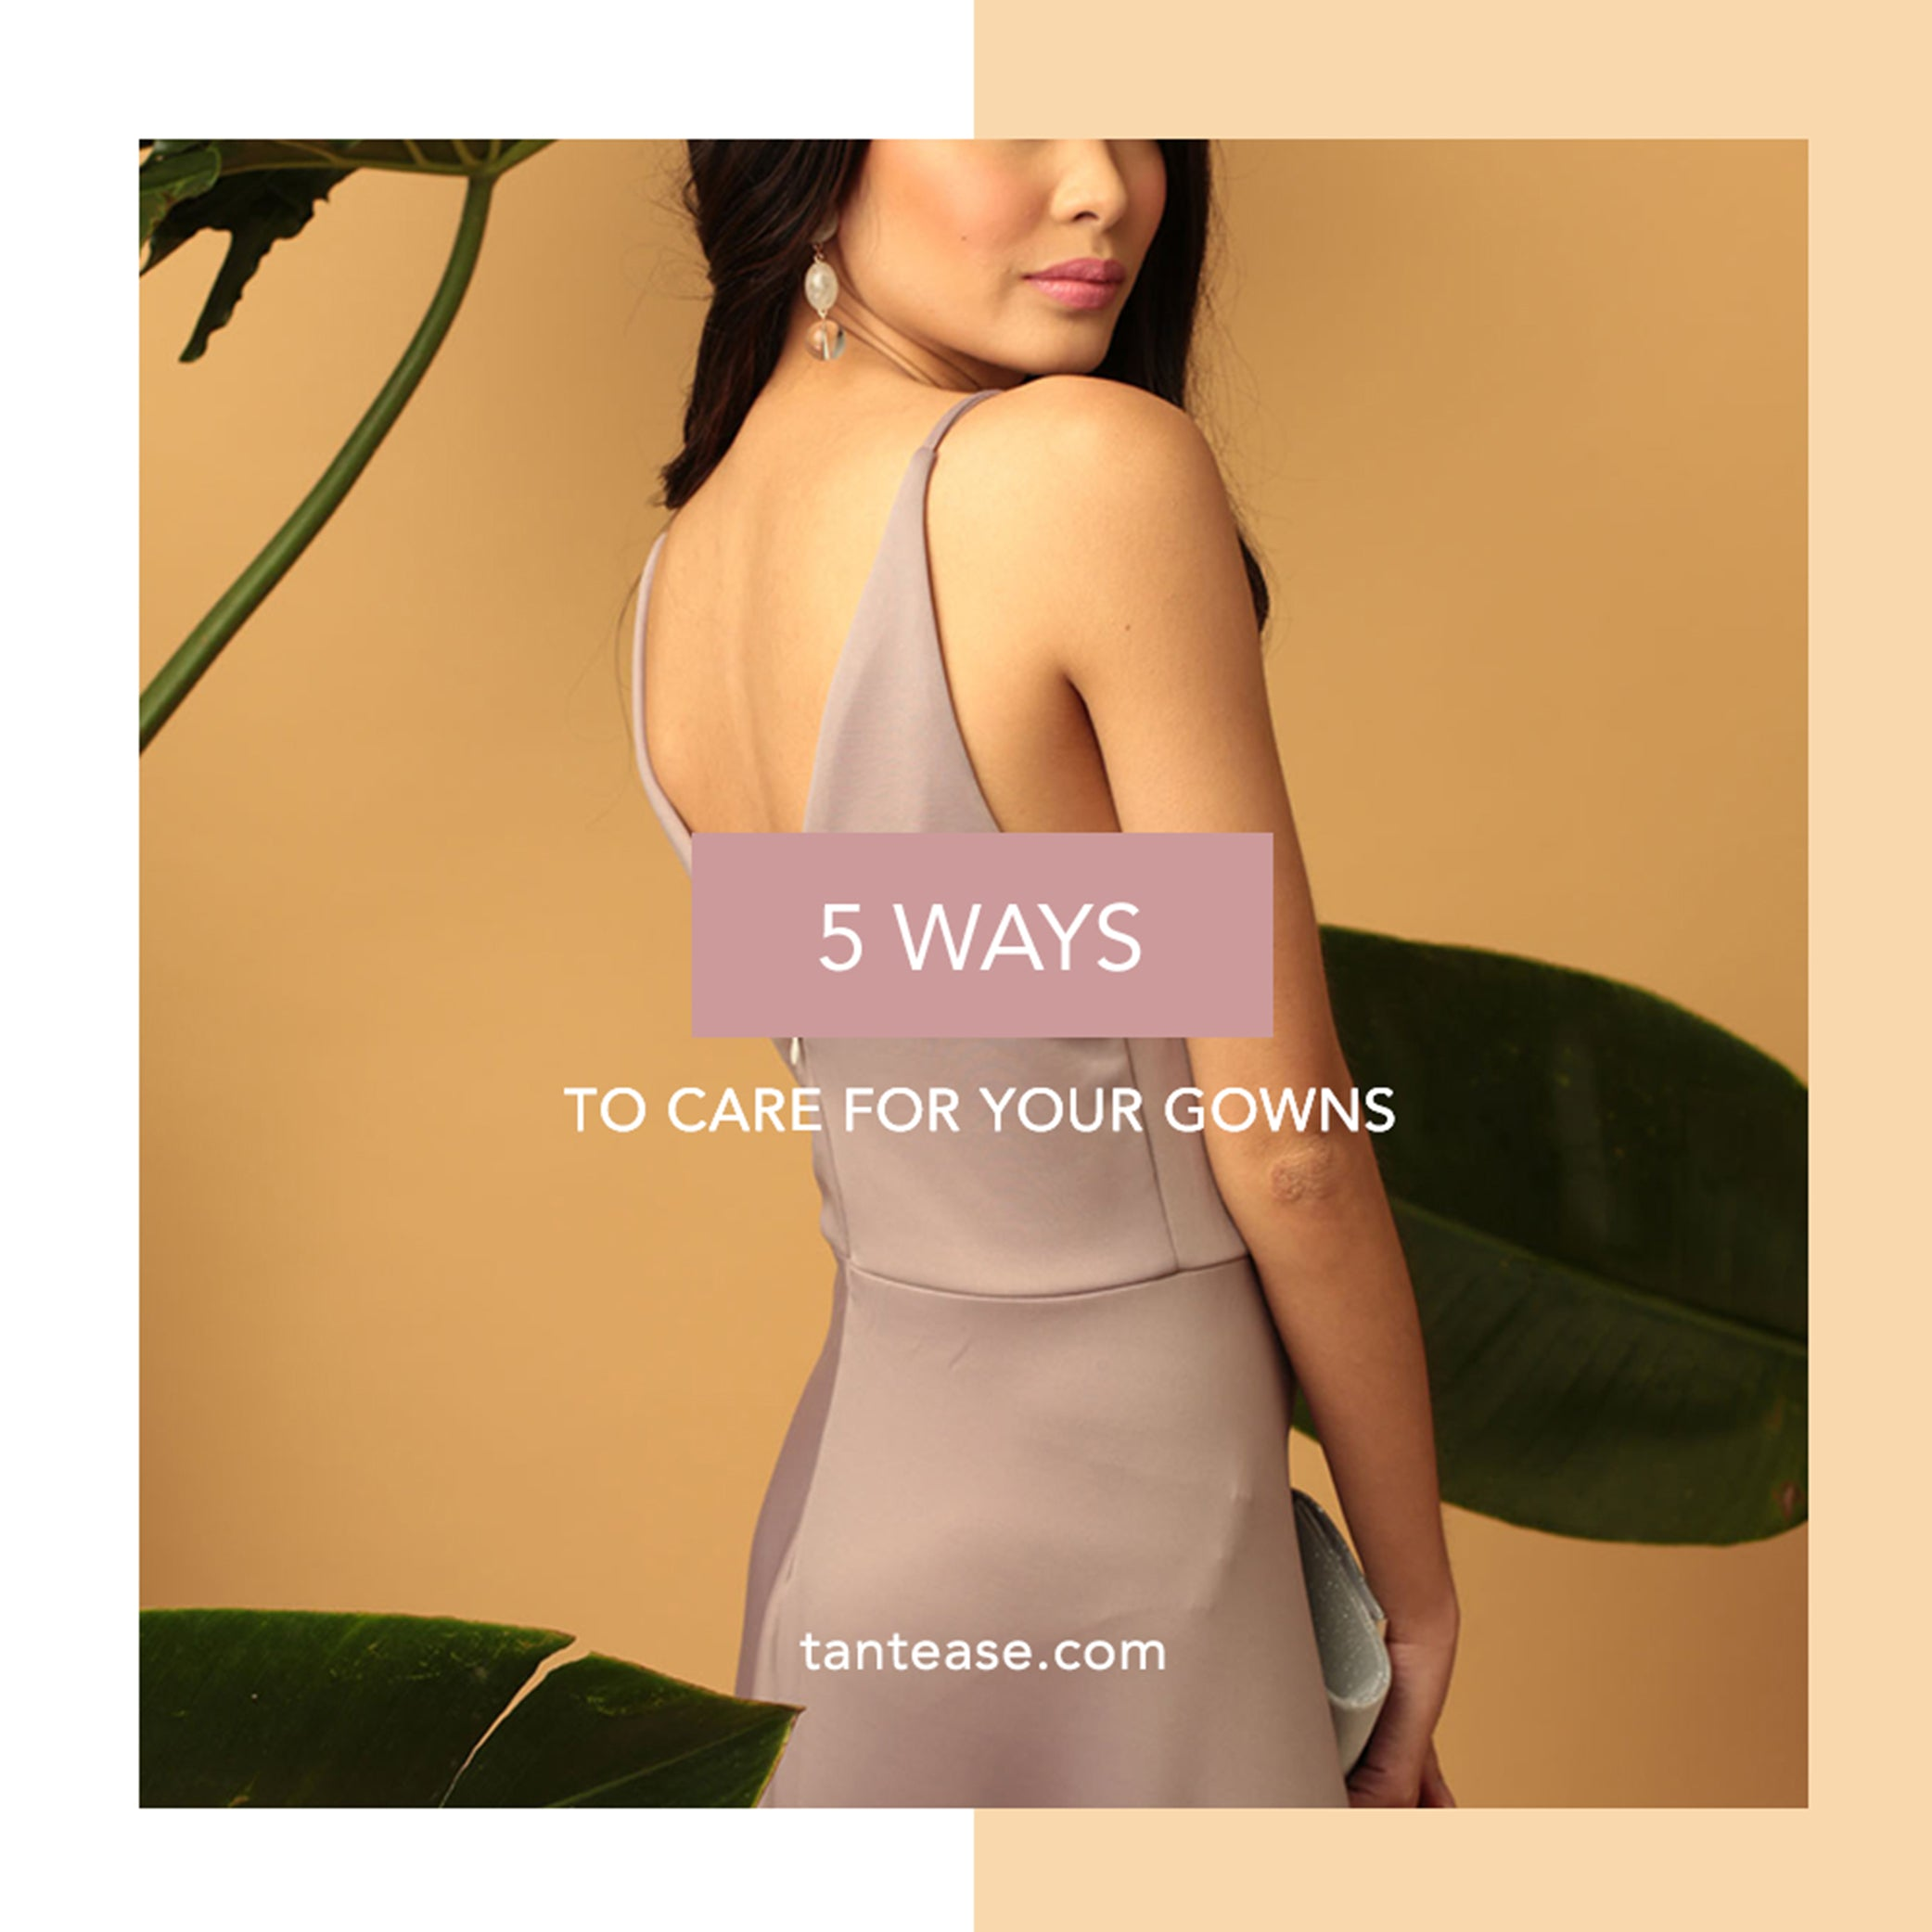 5 Ways To Care For Your Gowns